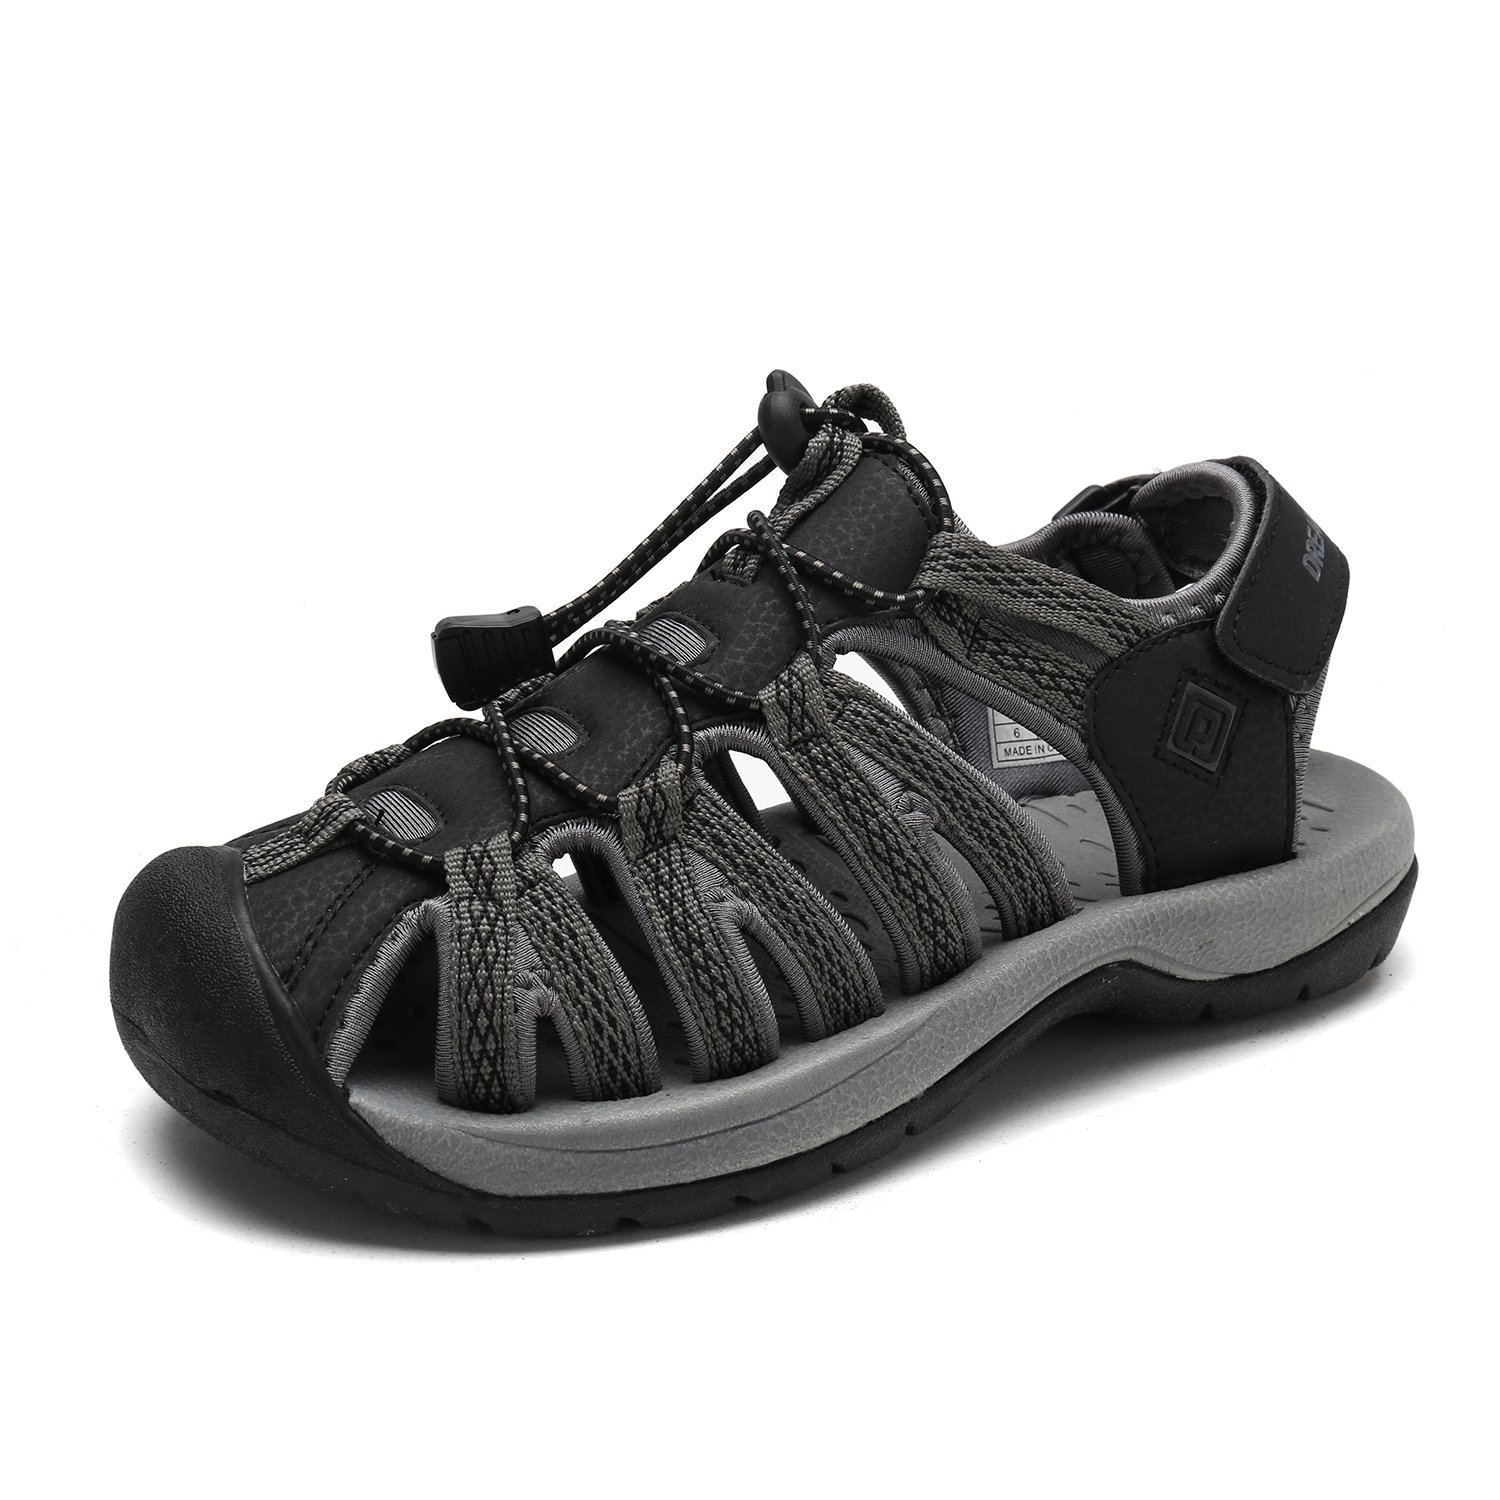 DREAM PAIRS Women's 160912-W Adventurous Summer Outdoor Sandals B077GCPGB4 5 B(M) US|Black Dk.grey